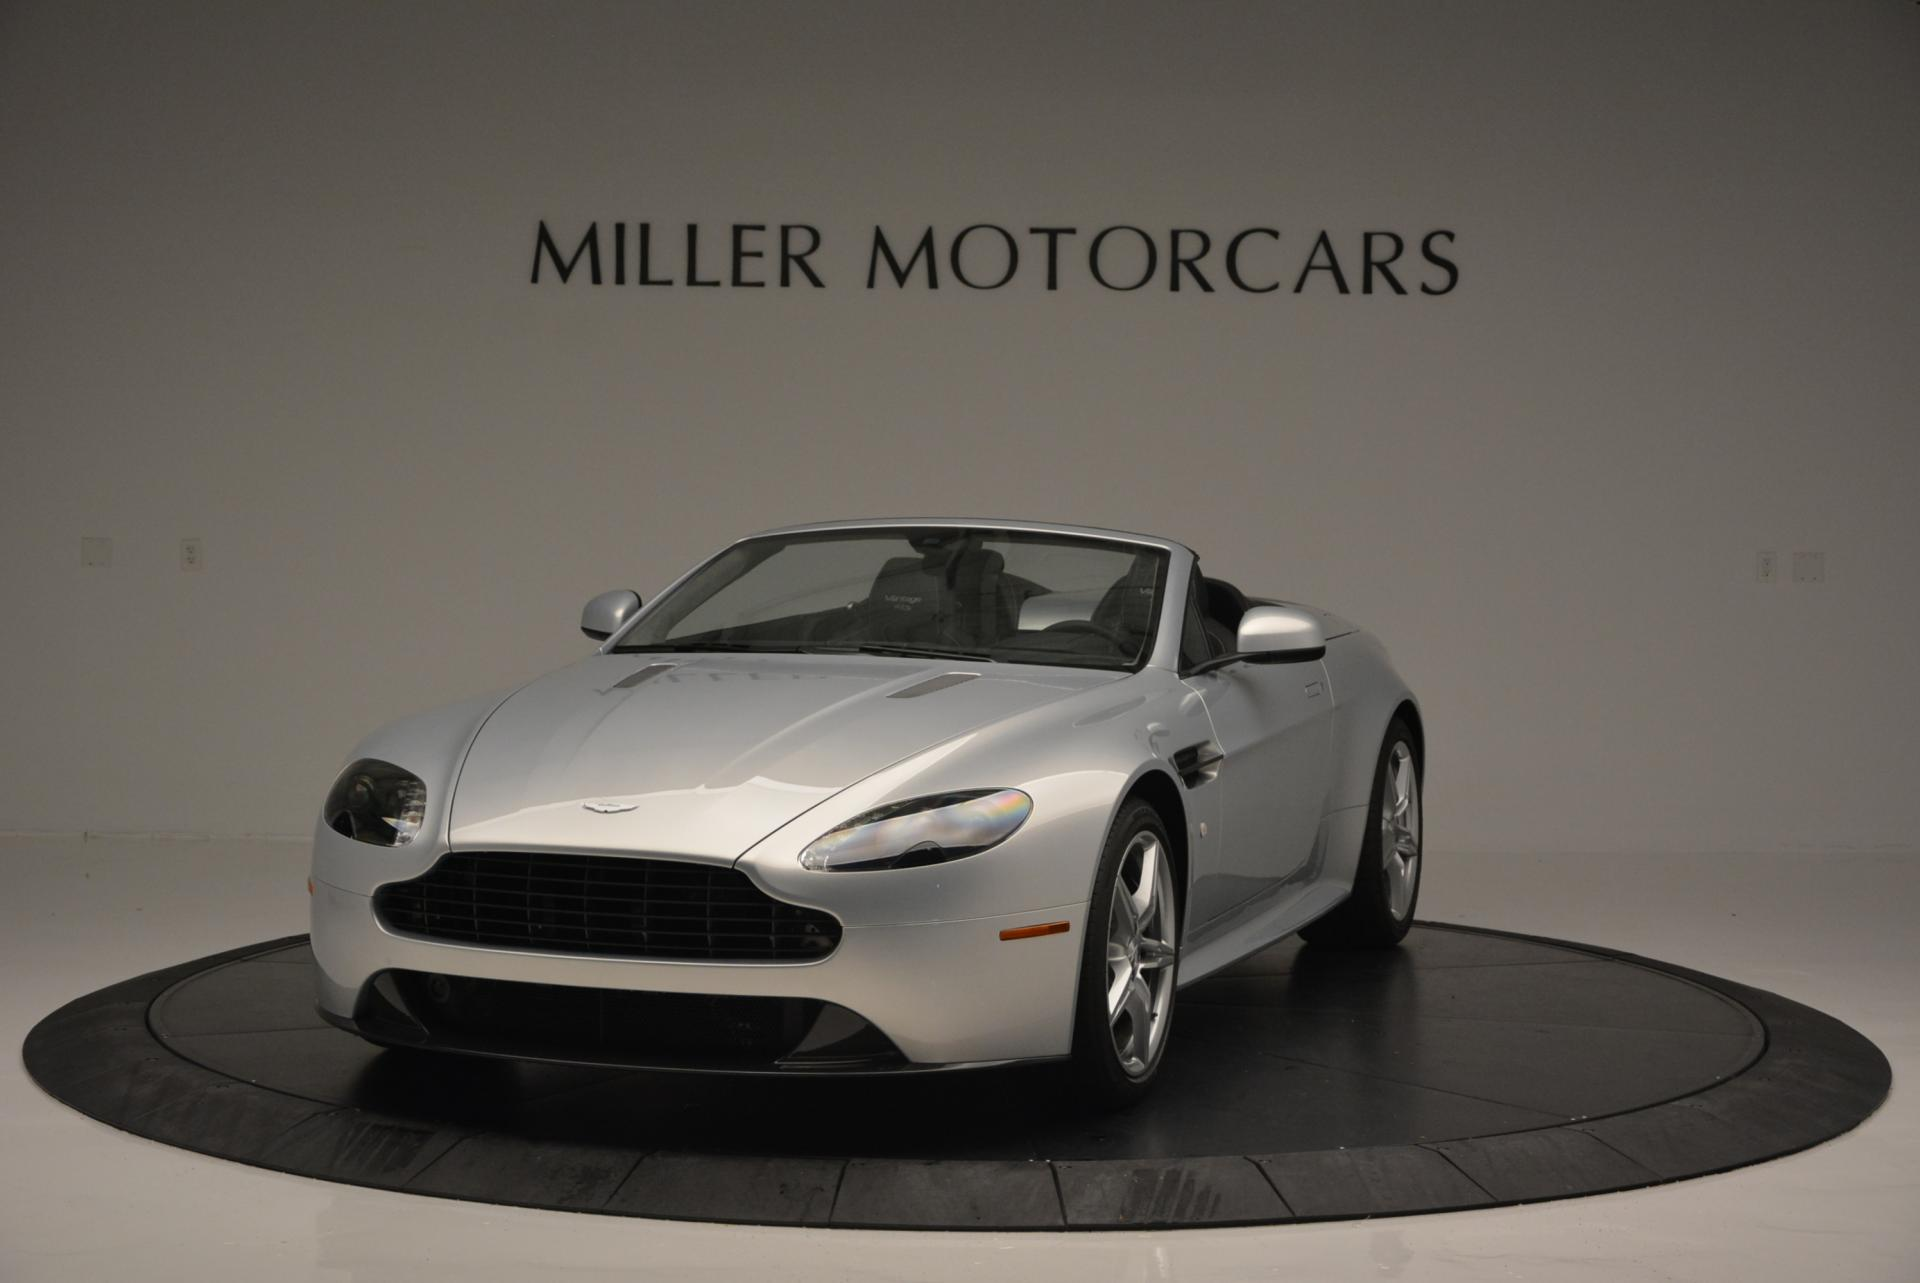 New 2016 Aston Martin V8 Vantage GTS Roadster For Sale In Greenwich, CT 90_main